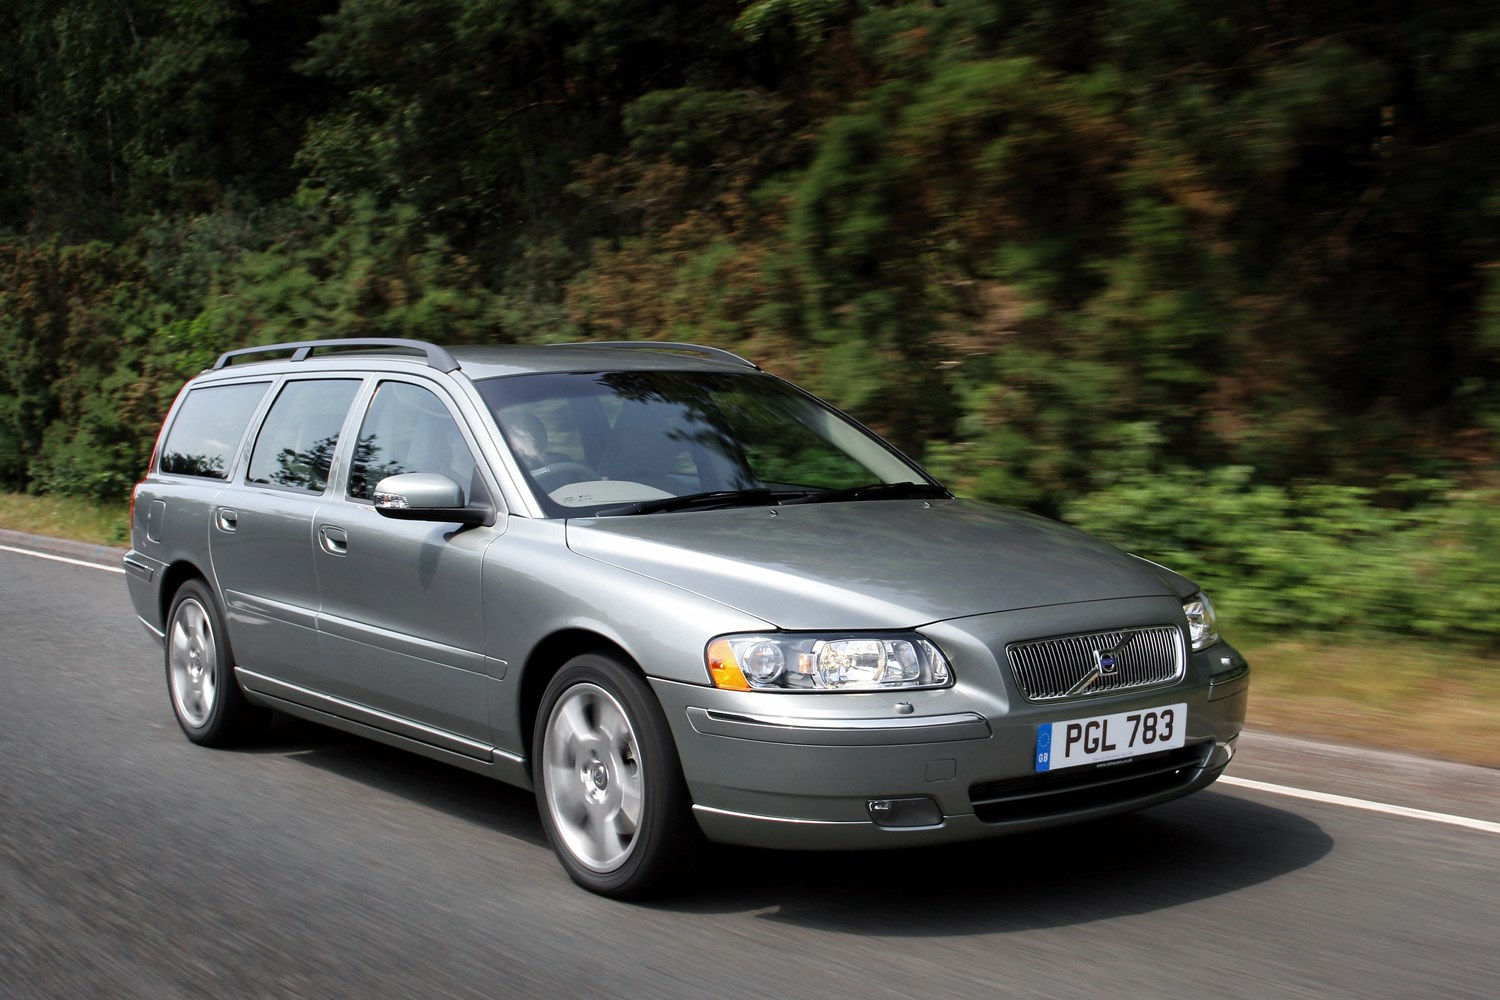 View all images of the volvo v70 00 07